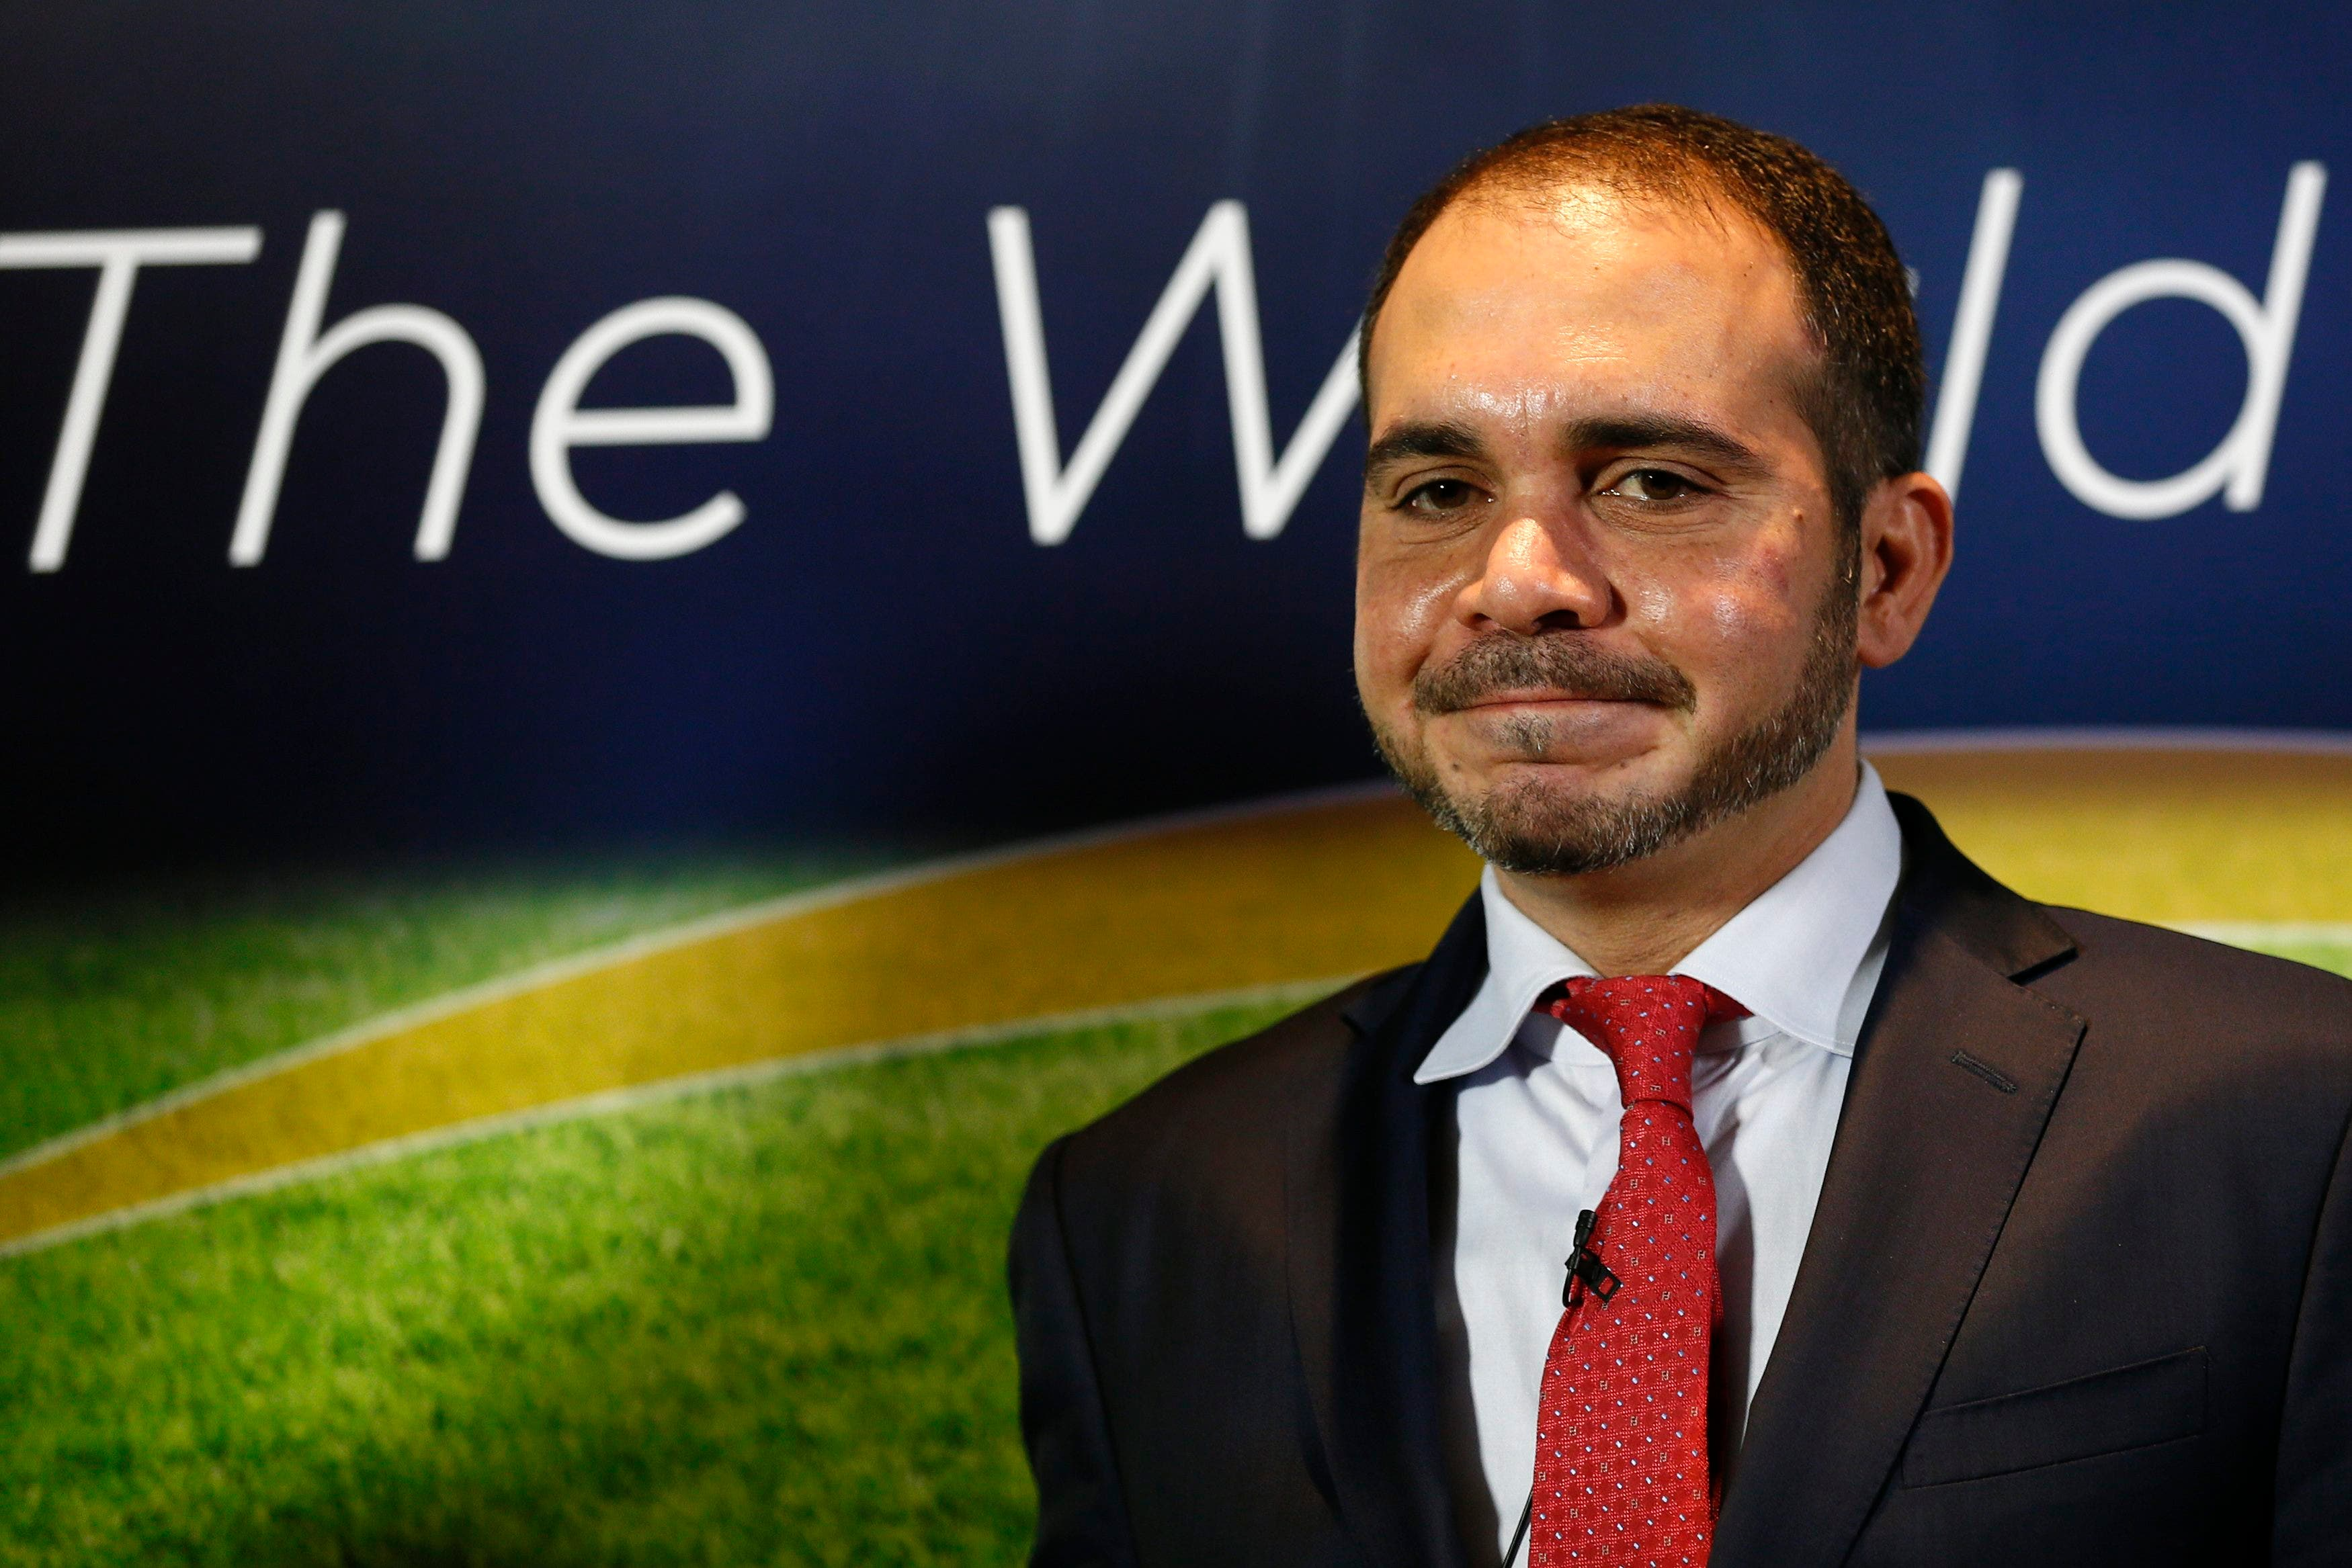 Jordan's Prince Ali Bin Al-Hussein, FIFA's Asian vice president and chairman of the Jordan Football Association, poses for photographers after a news conference in central London February 3, 2015. Reuters